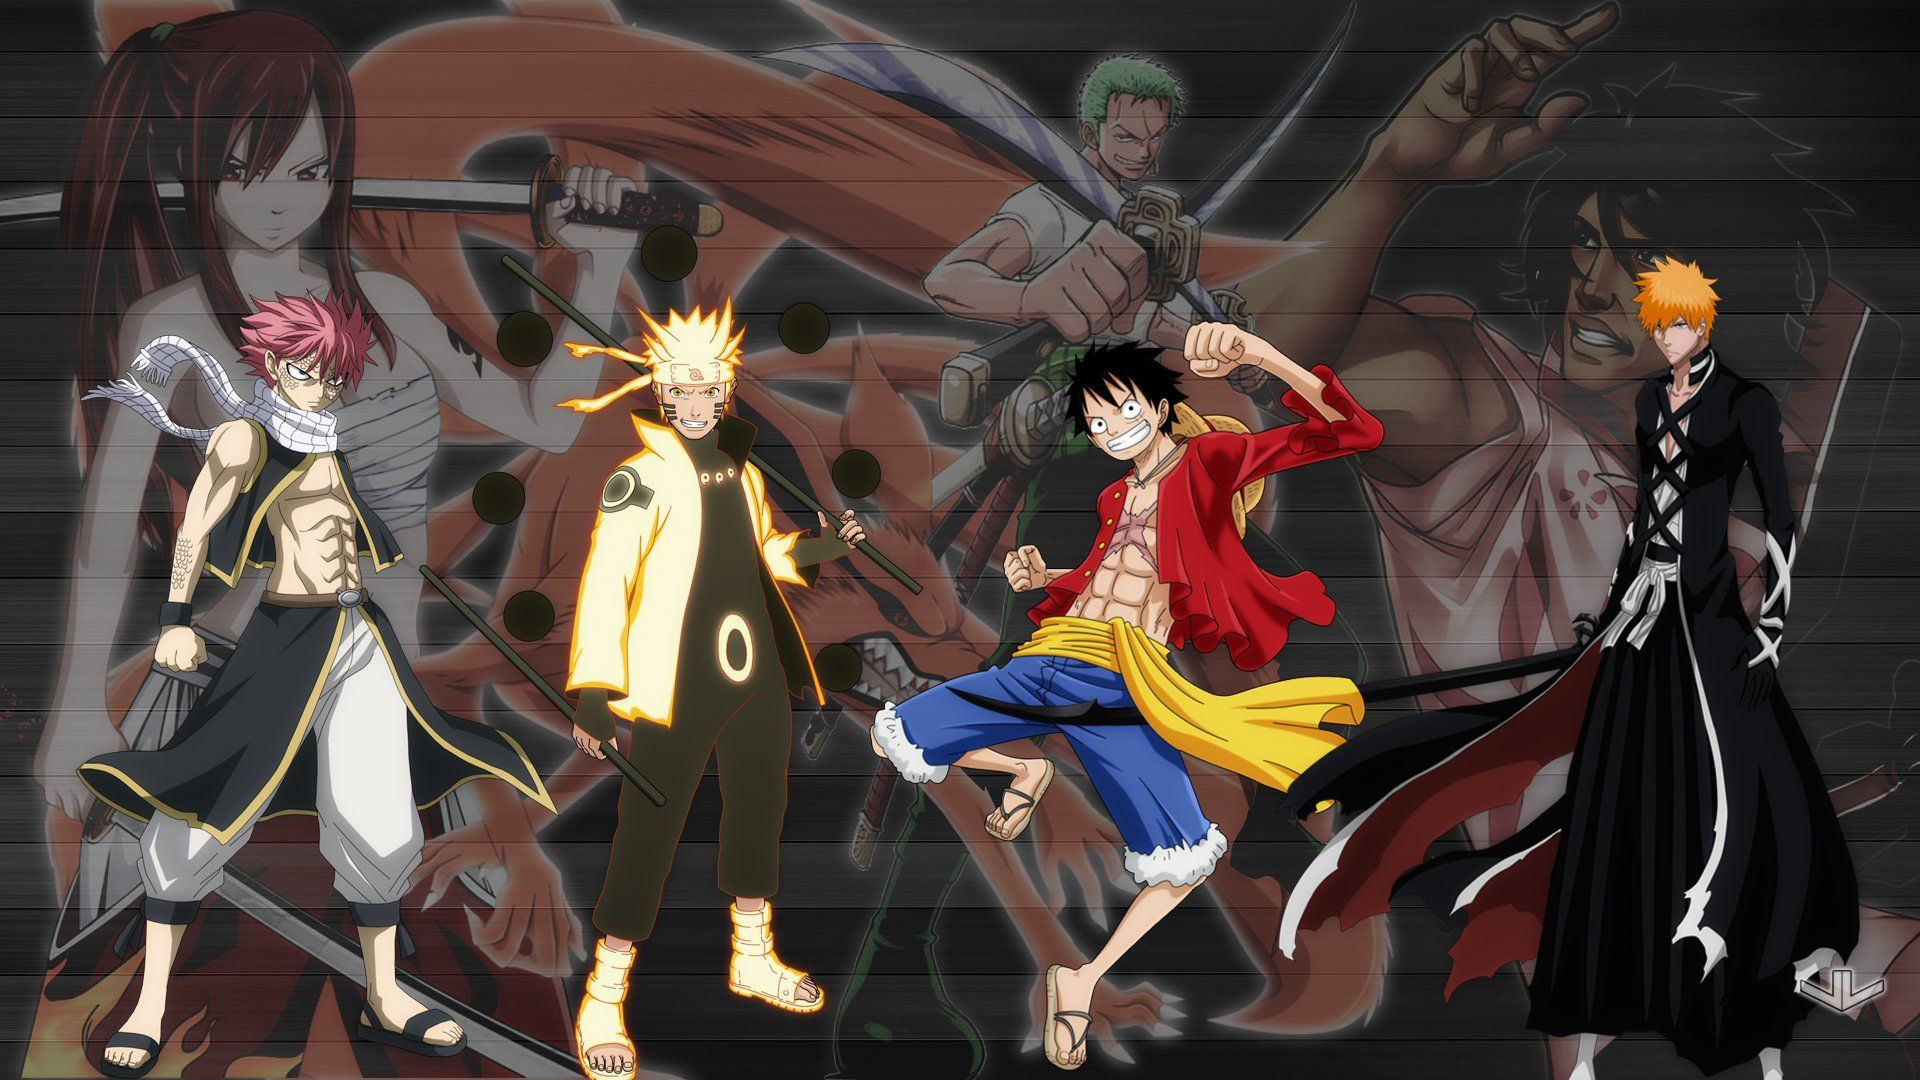 Anime 4k One Piece Naruto Wallpapers - Wallpaper Cave